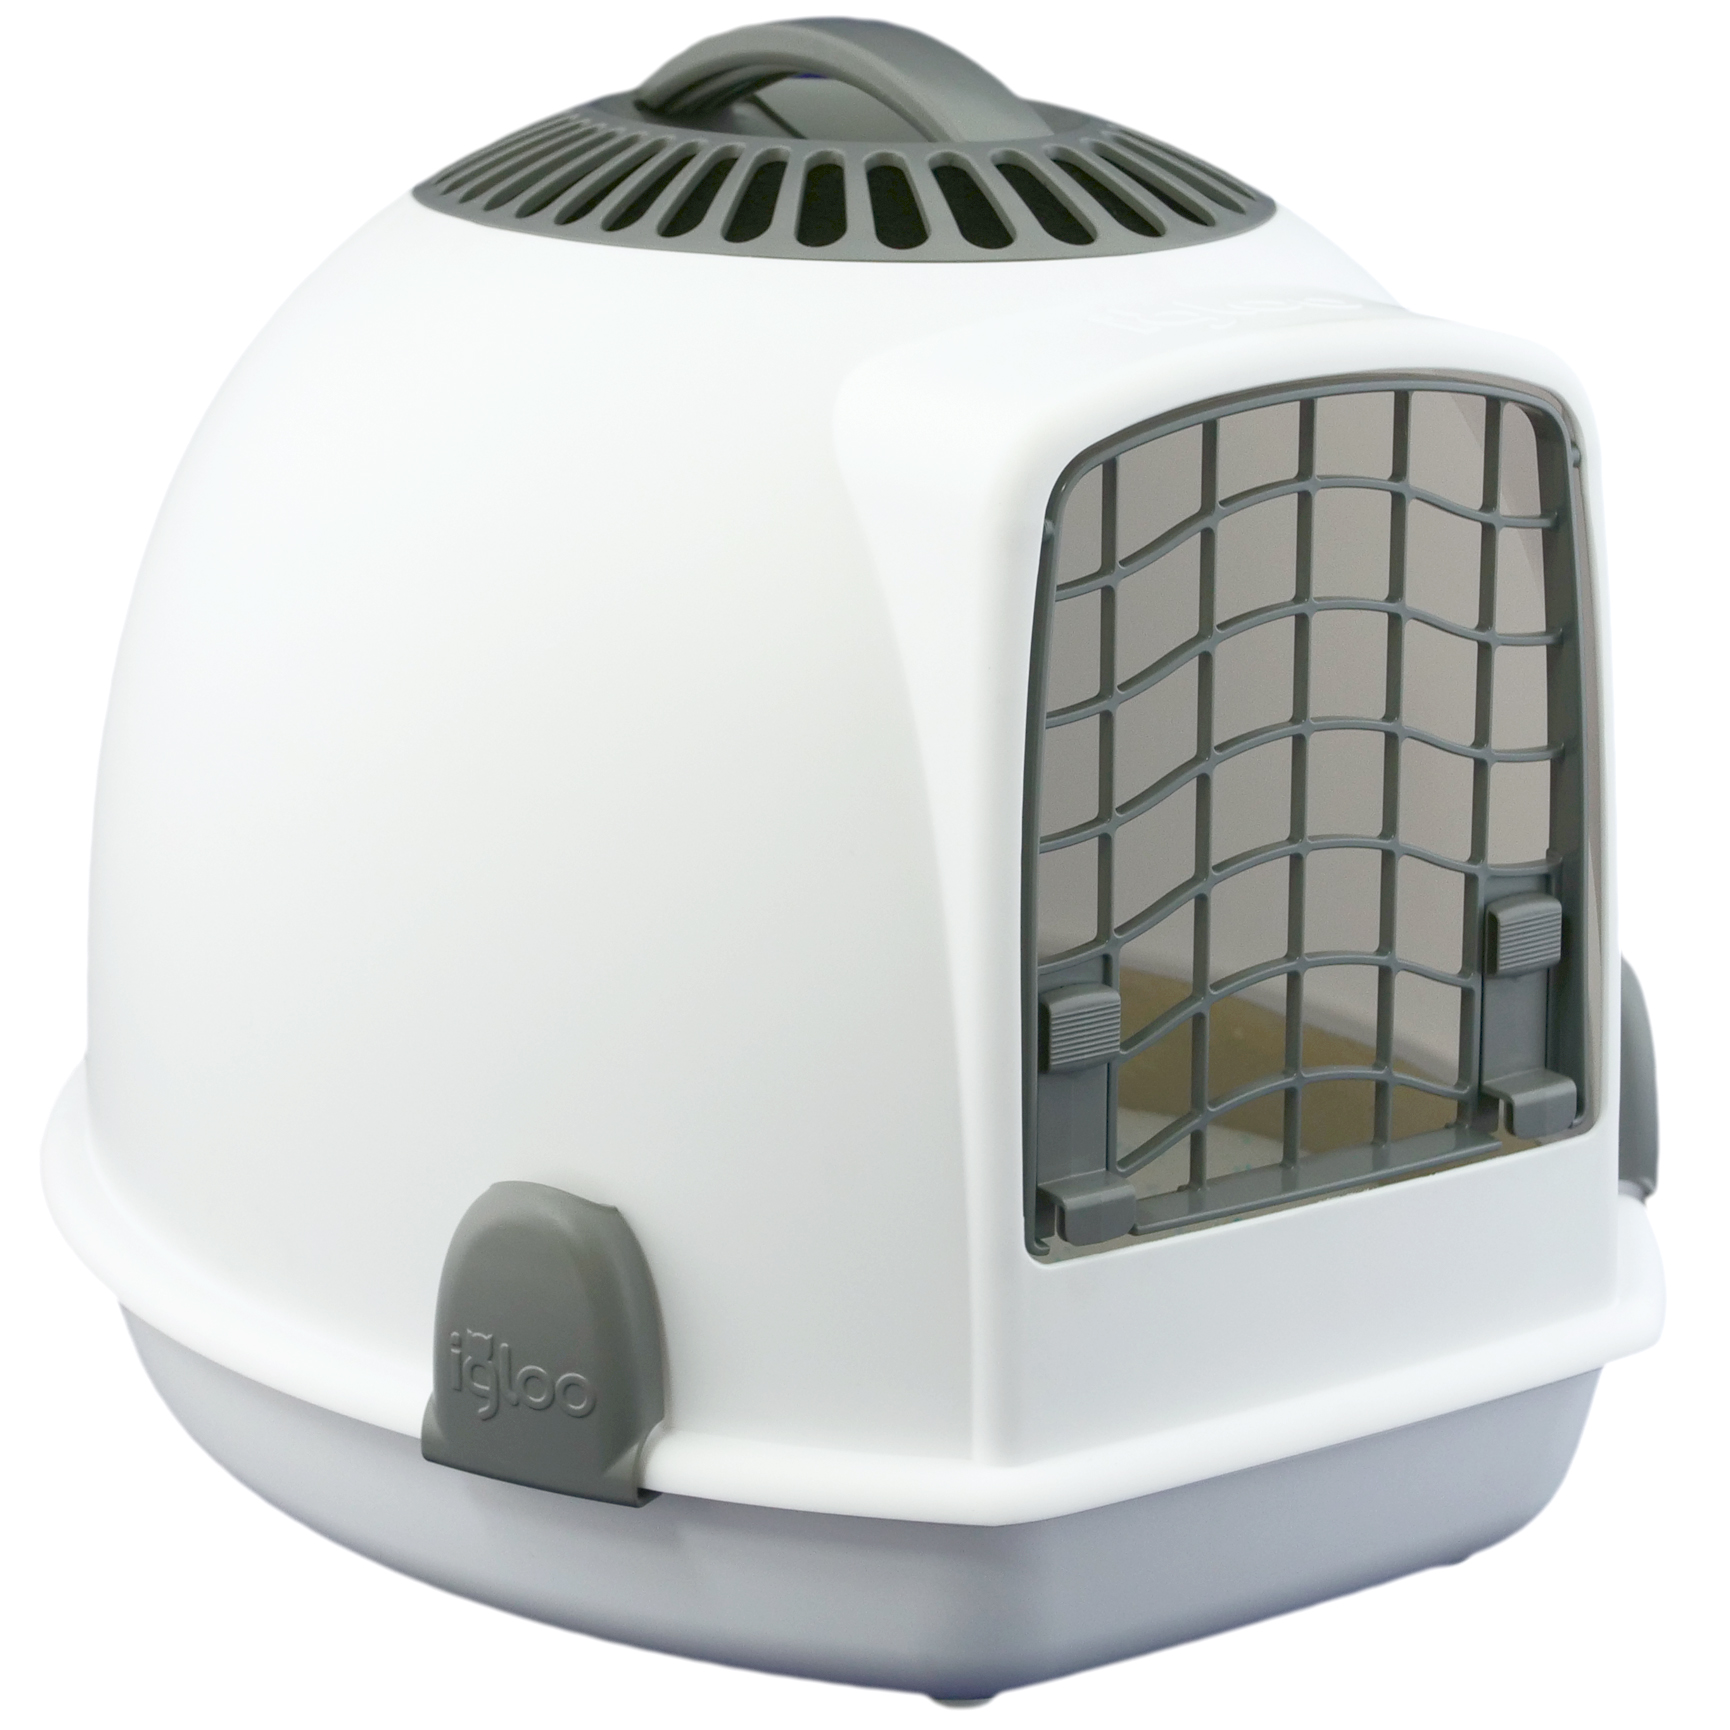 Litter Trays & Litter Boxes